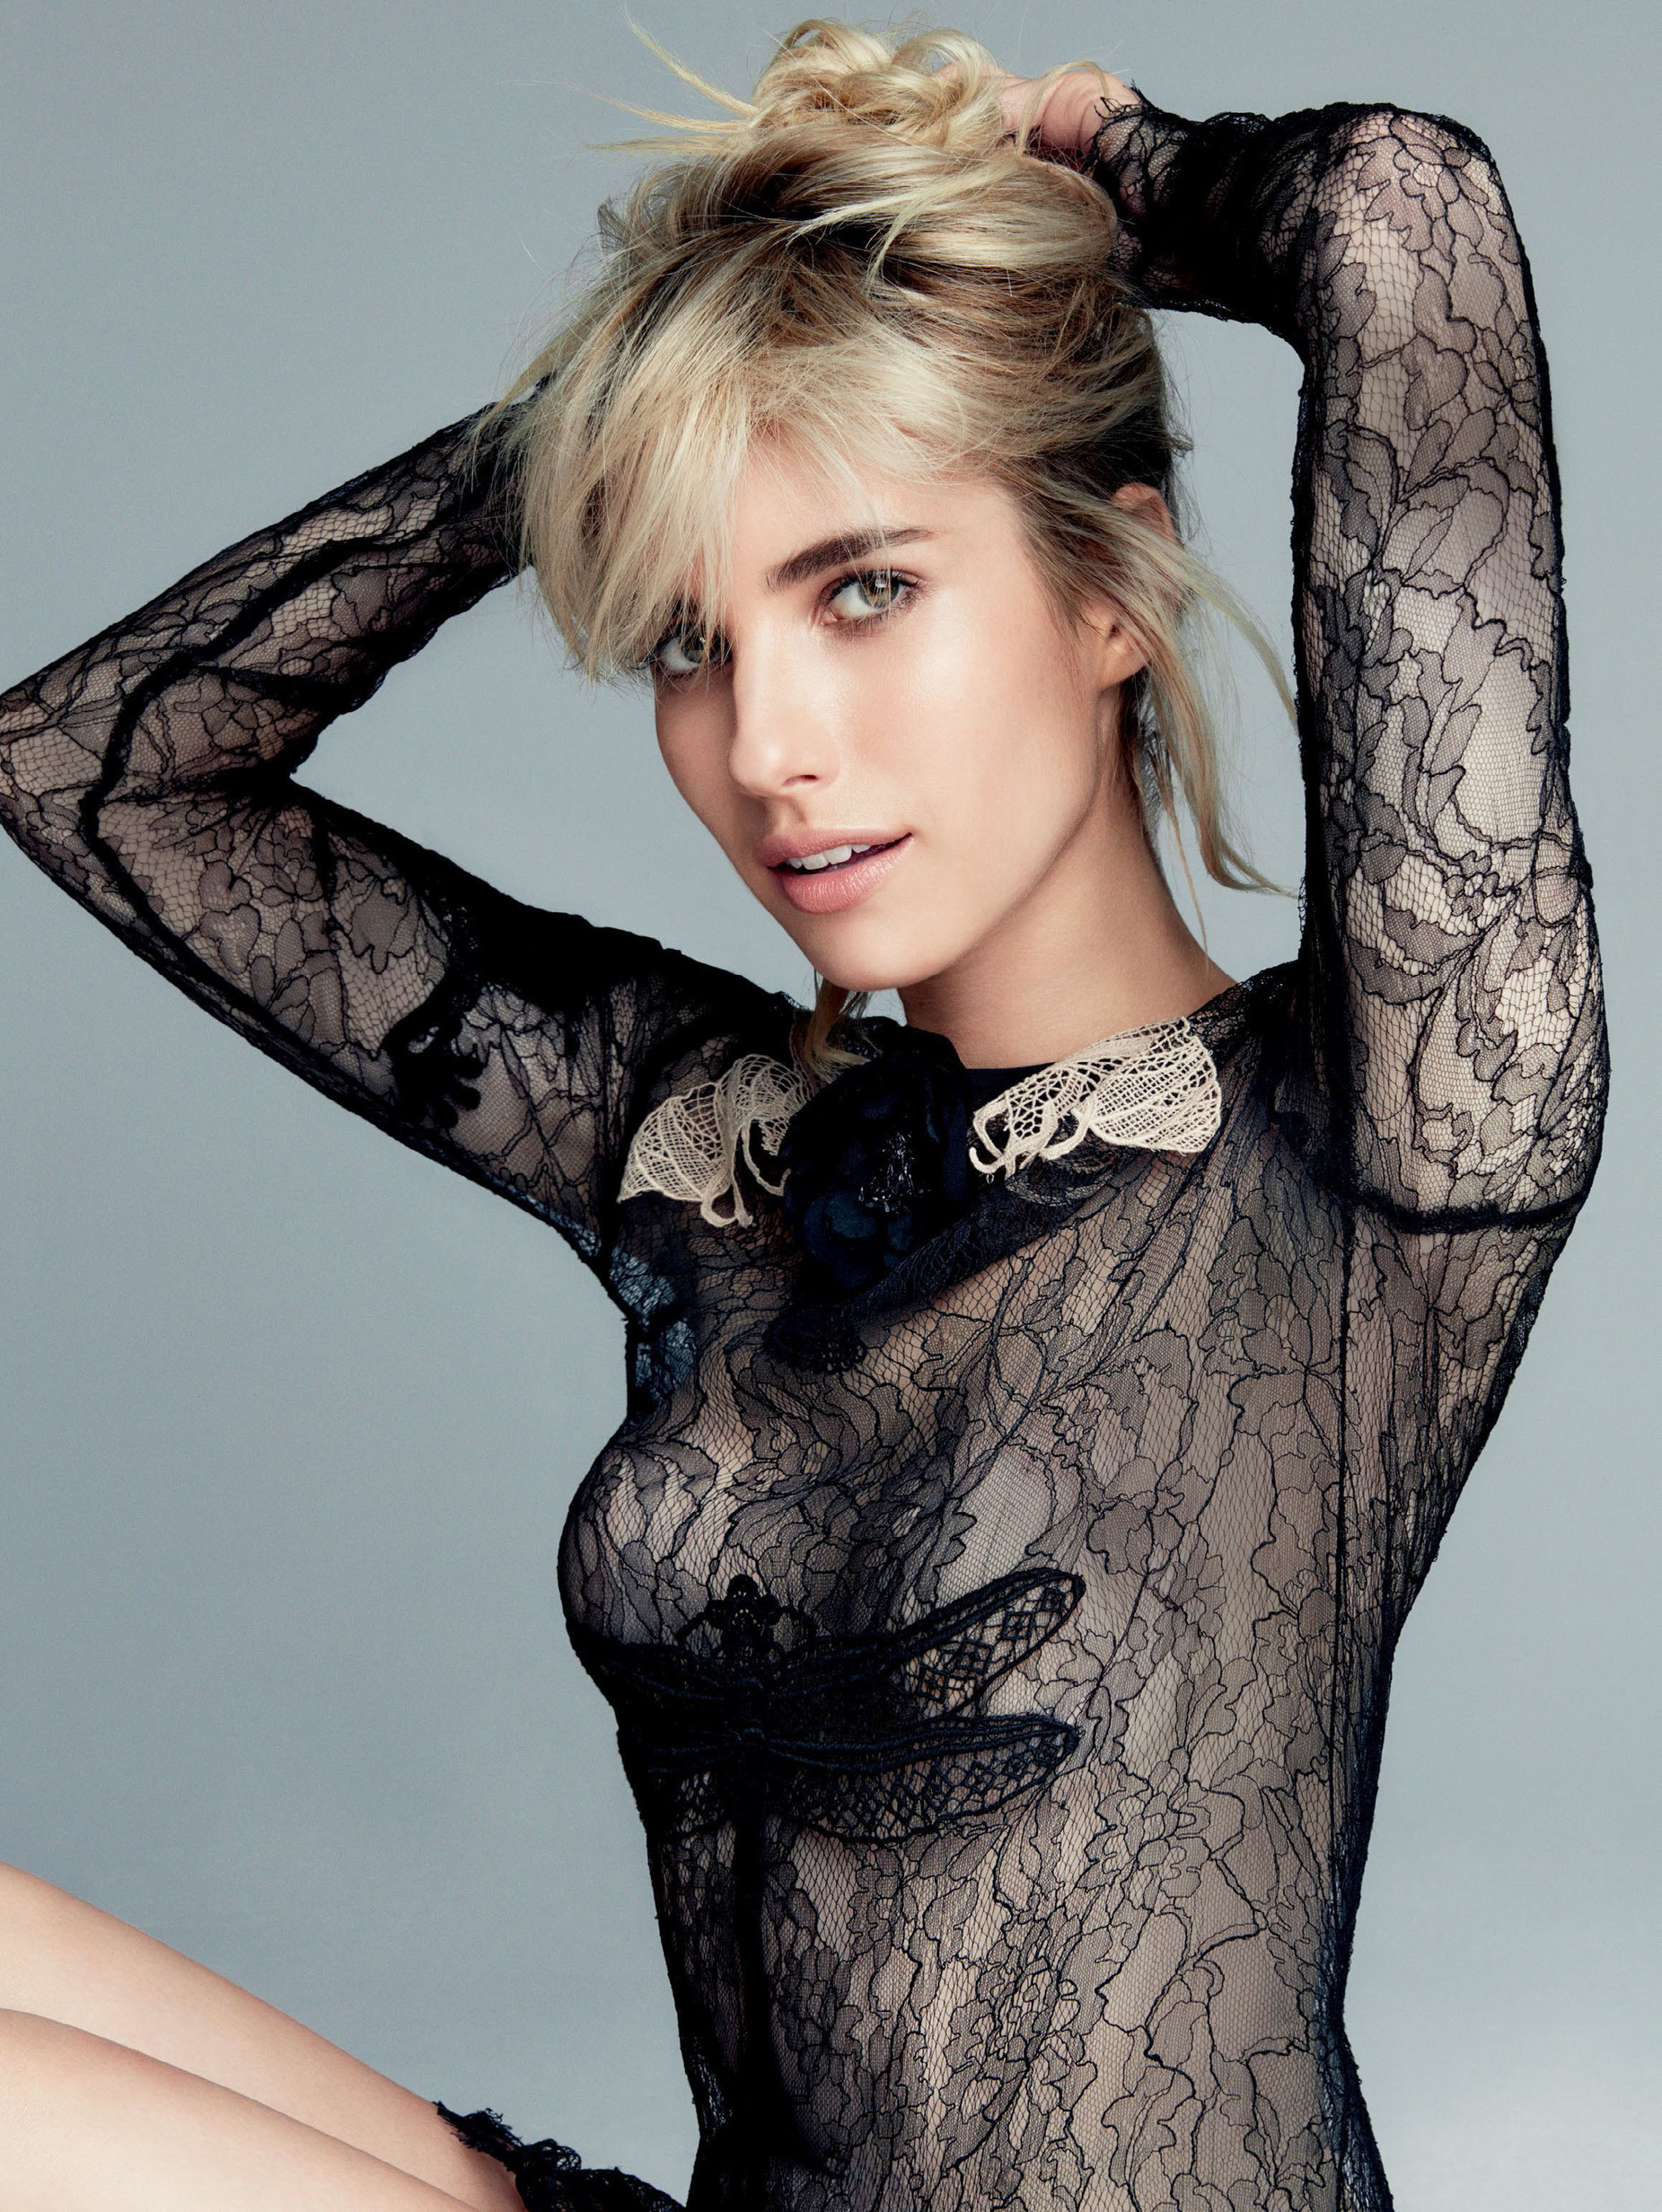 emma-roberts-sexy-photos